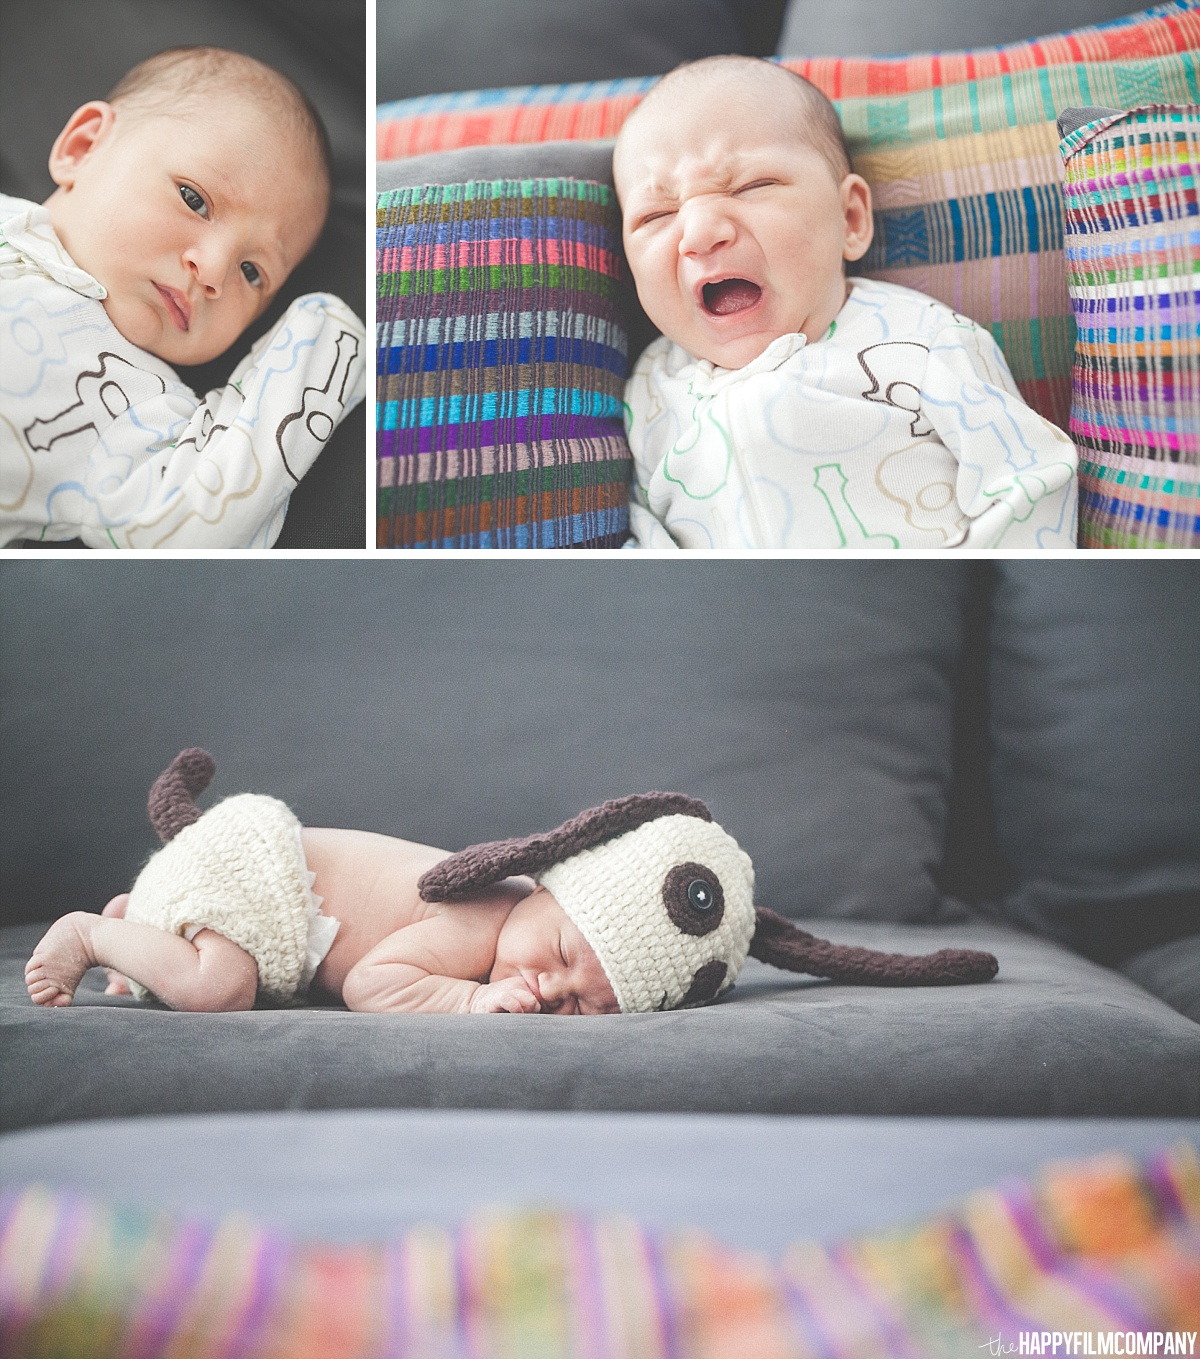 Newborn photography session in the couch - - the Happy Film Company - Seattle Family Photos